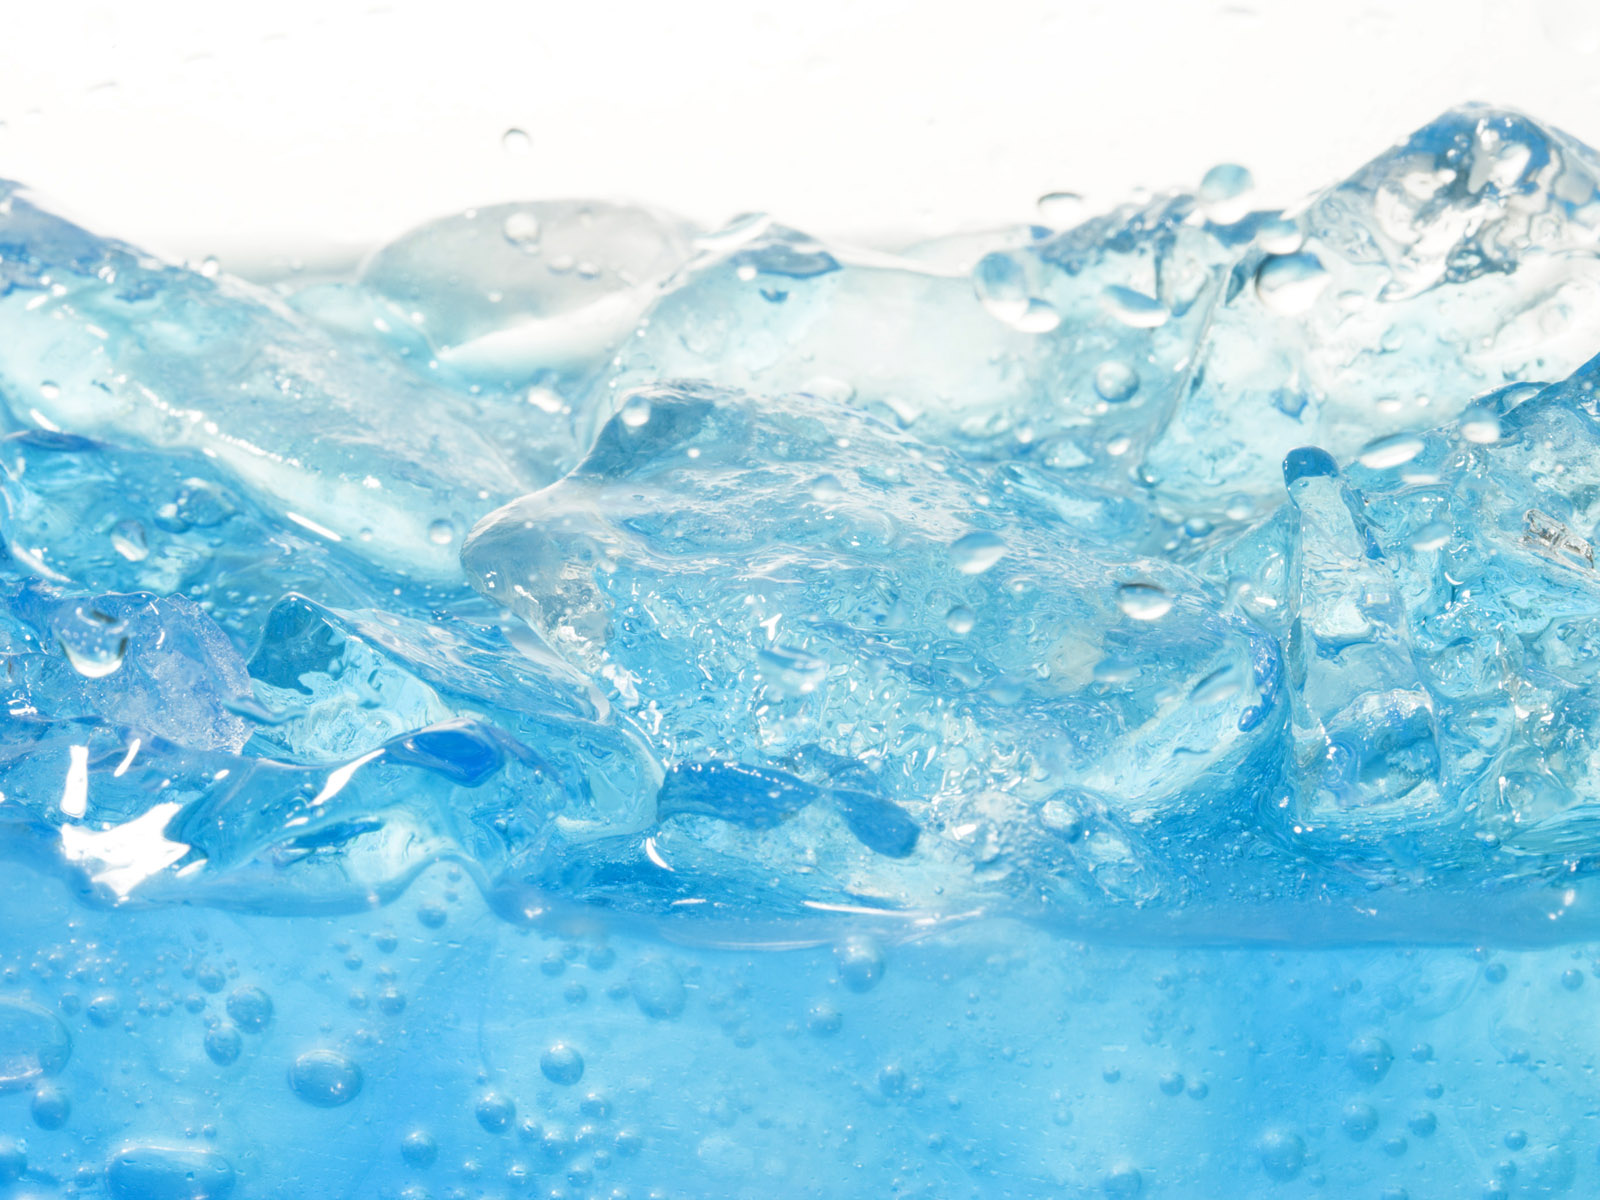 Ice Images (39917388) Free Download by Janeen Delman